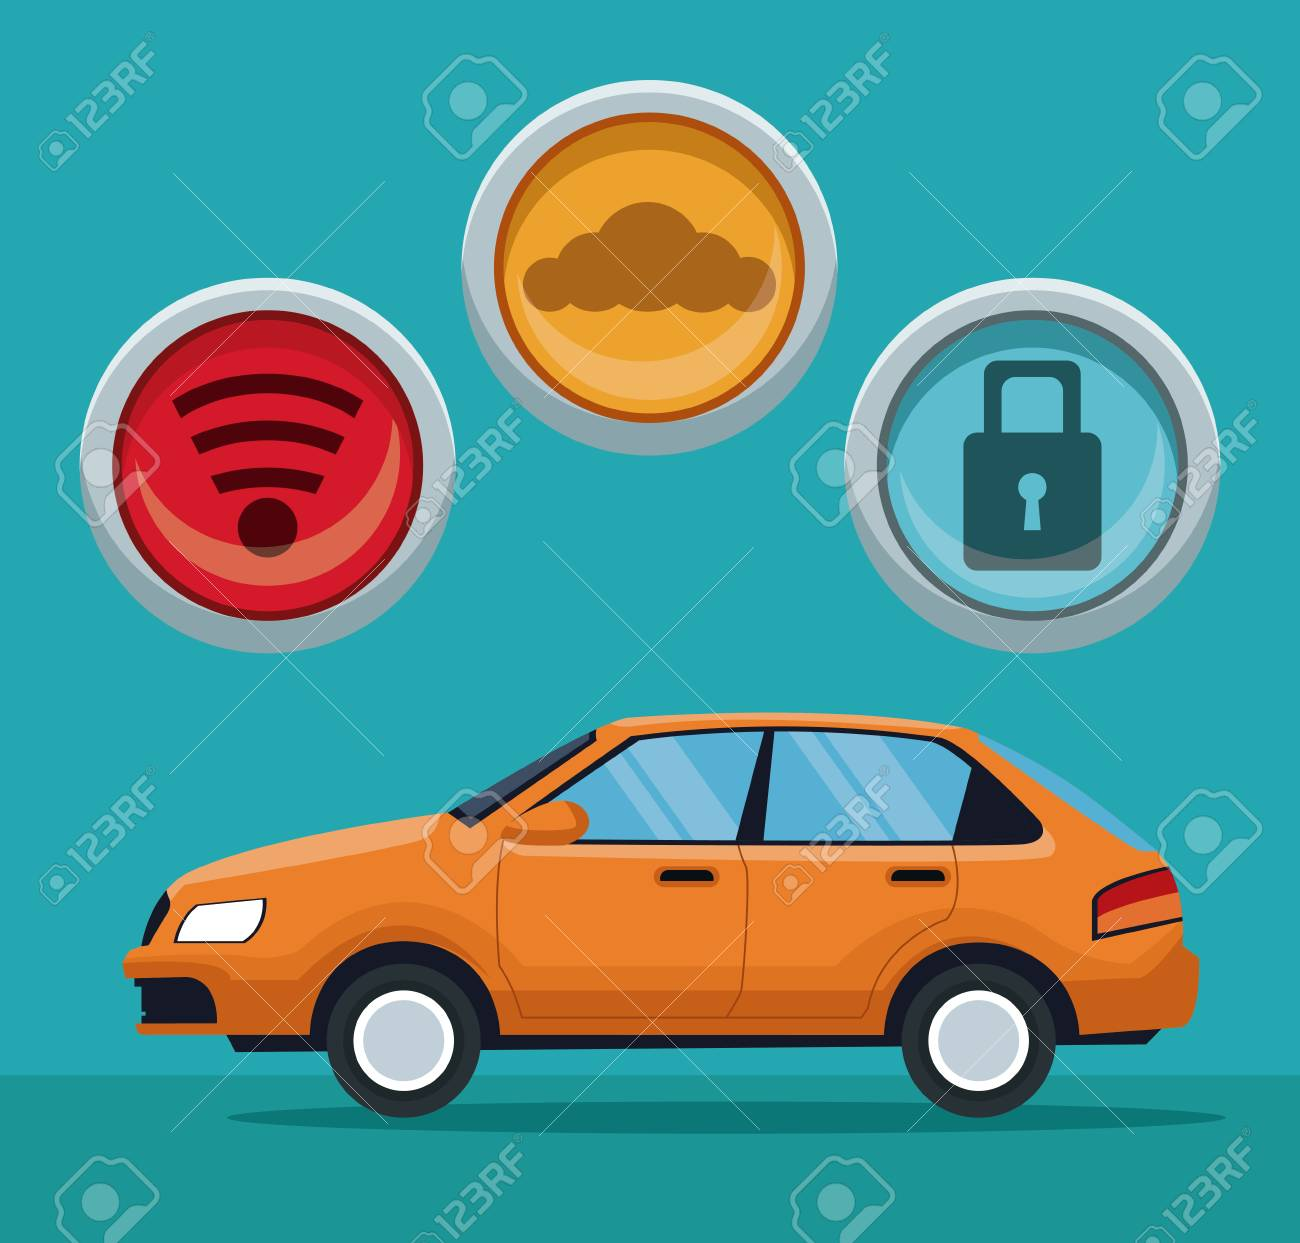 Color Background Of Classic Car Vehicle With Button Icons Vector Illustration Stock